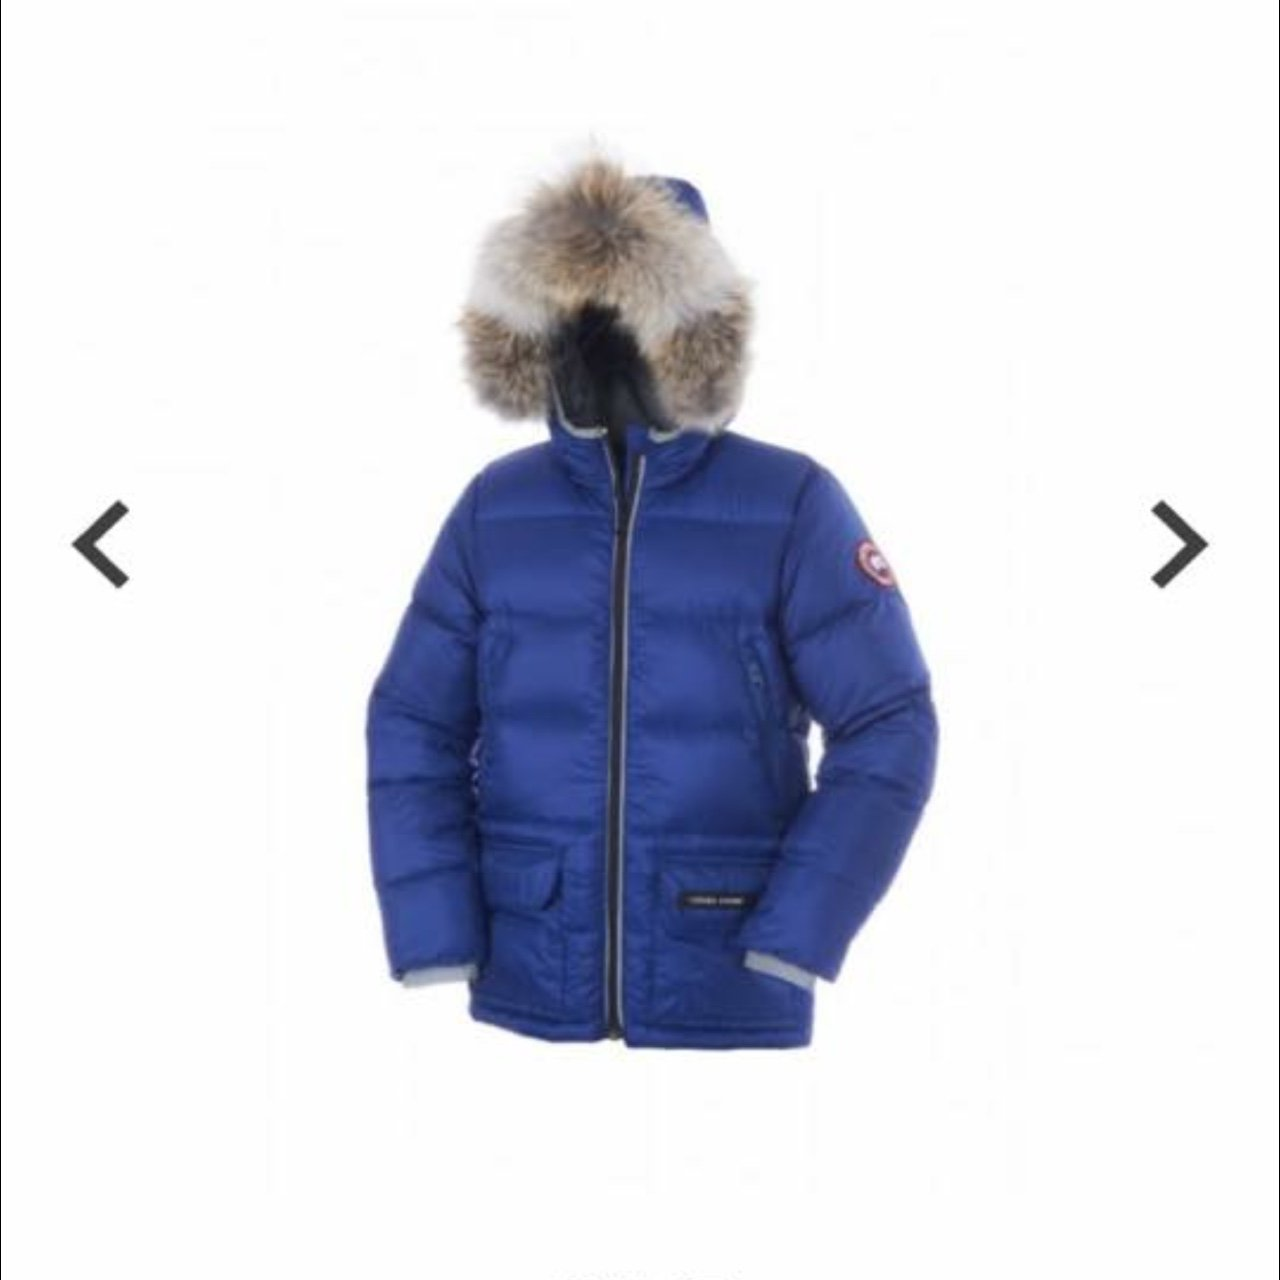 Junior unisex Canada goose coat ages 14-16 but is small . 6 - Depop cbaaecabb4b3